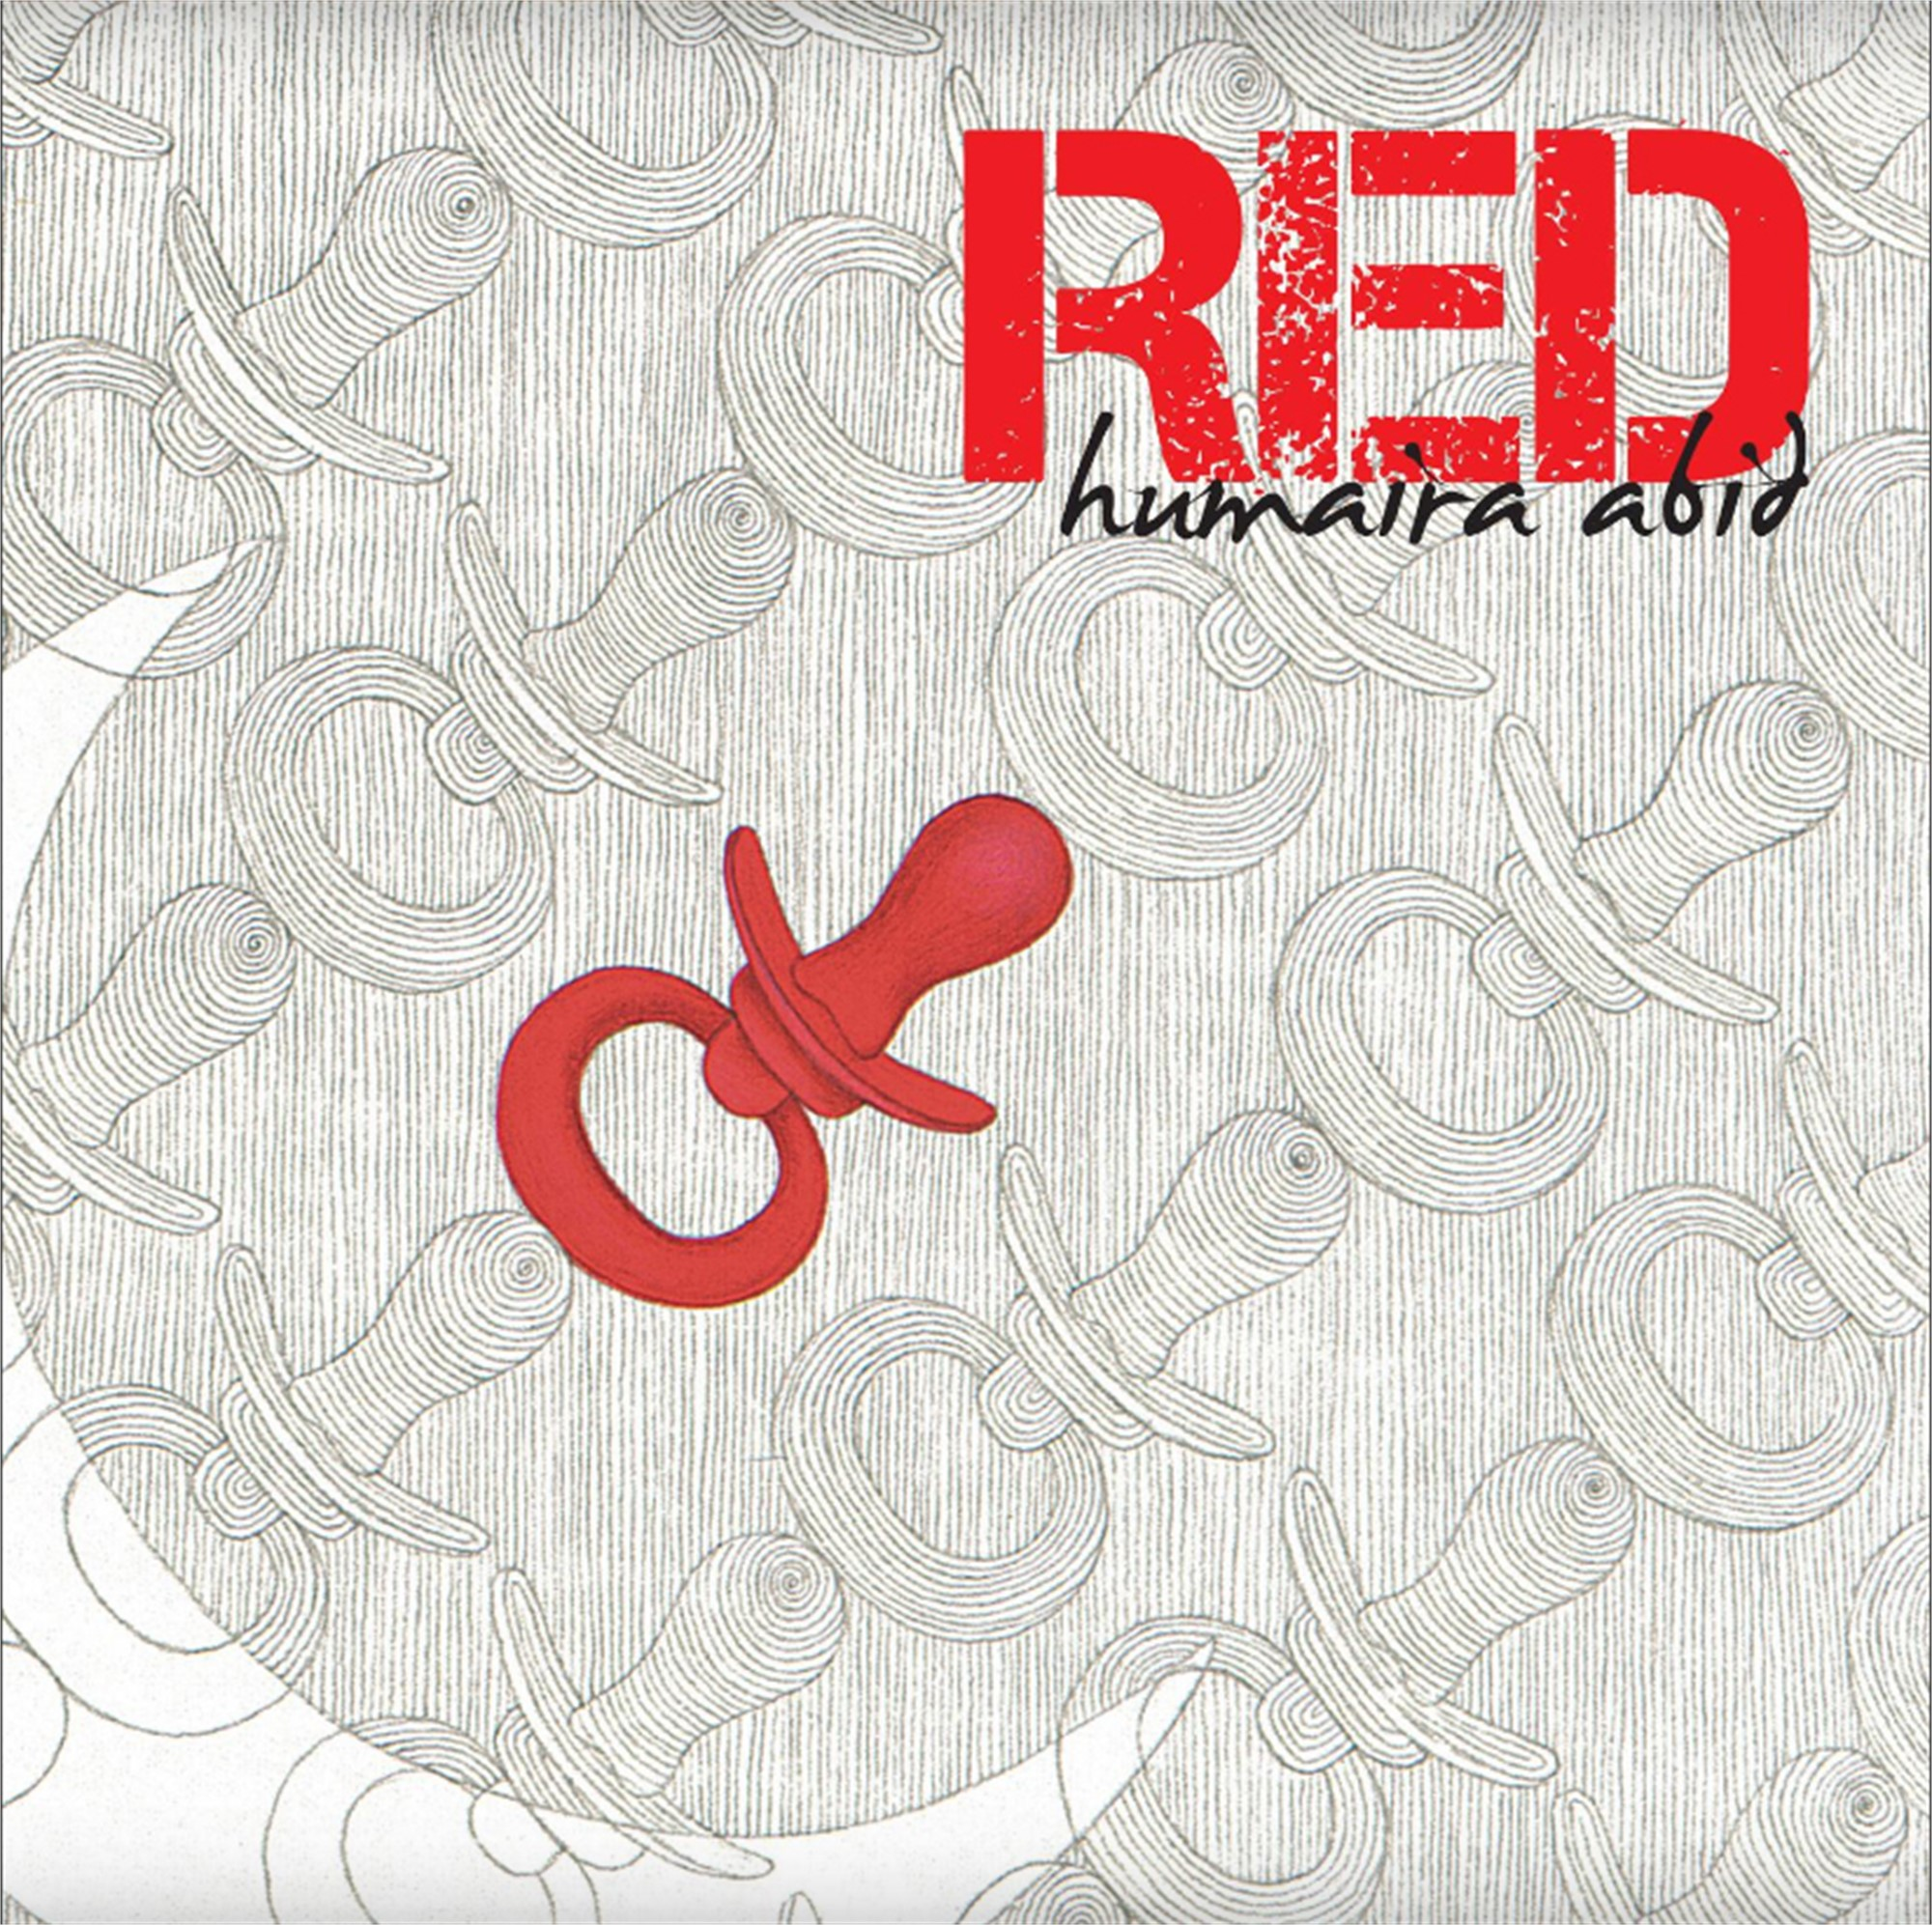 RED | Exhibition Catalog by Humaira Abid